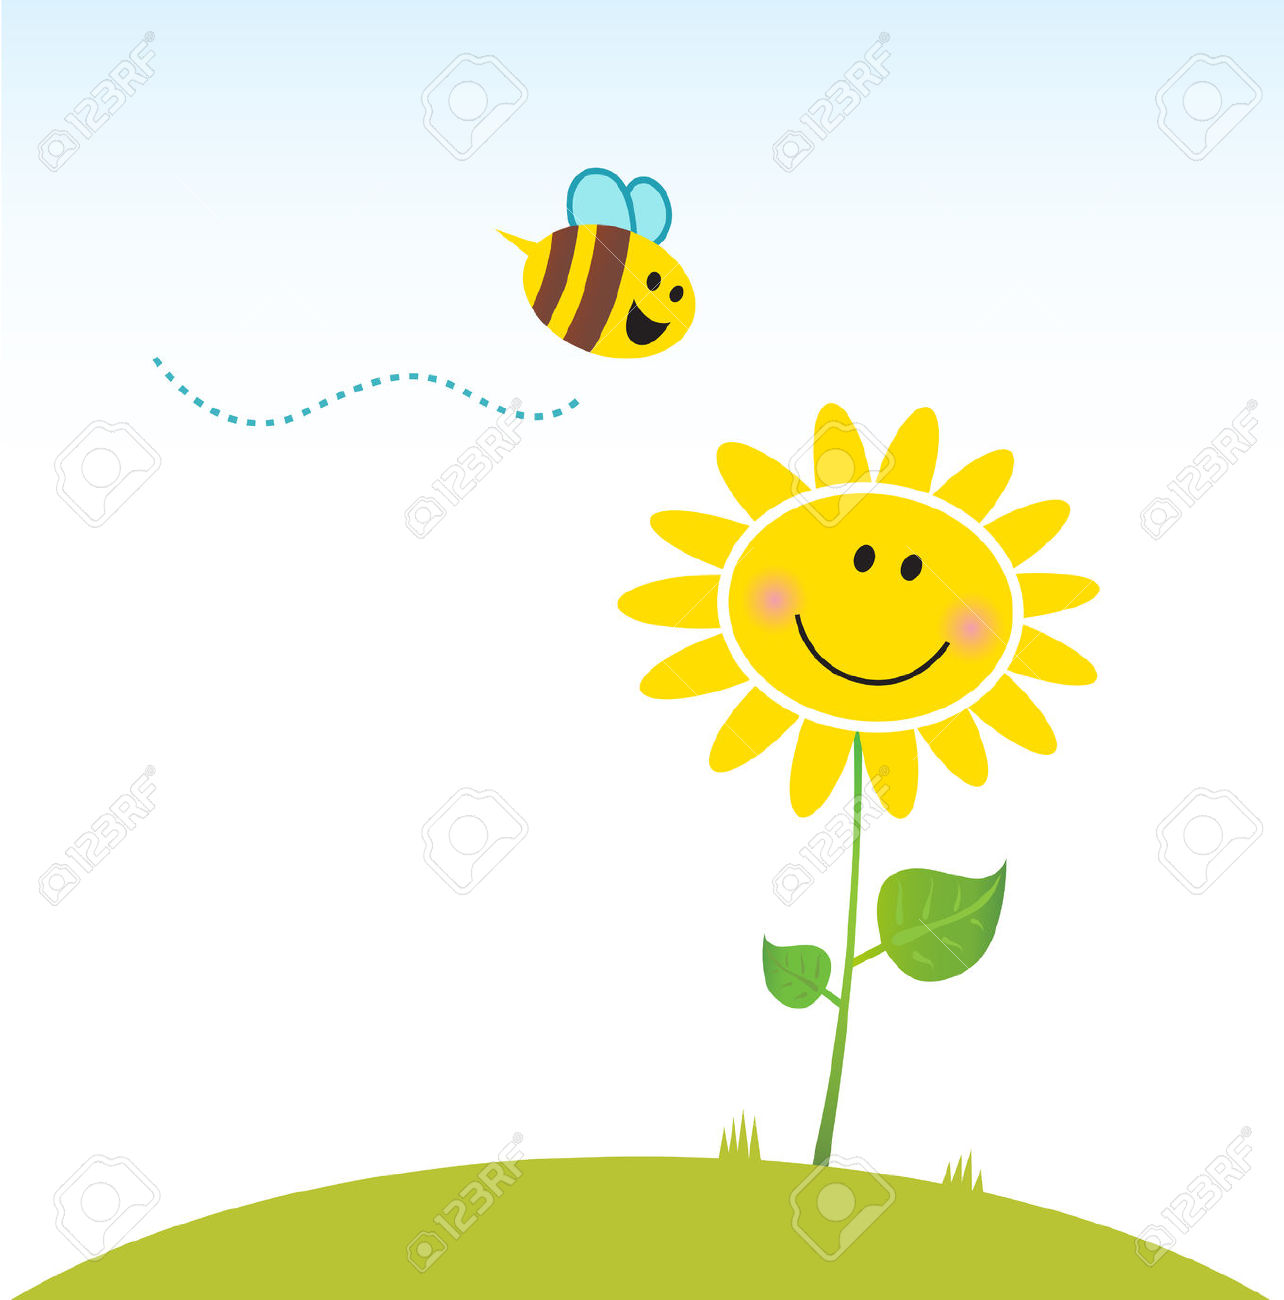 1284x1300 Sunflower Bee Clipart, Explore Pictures